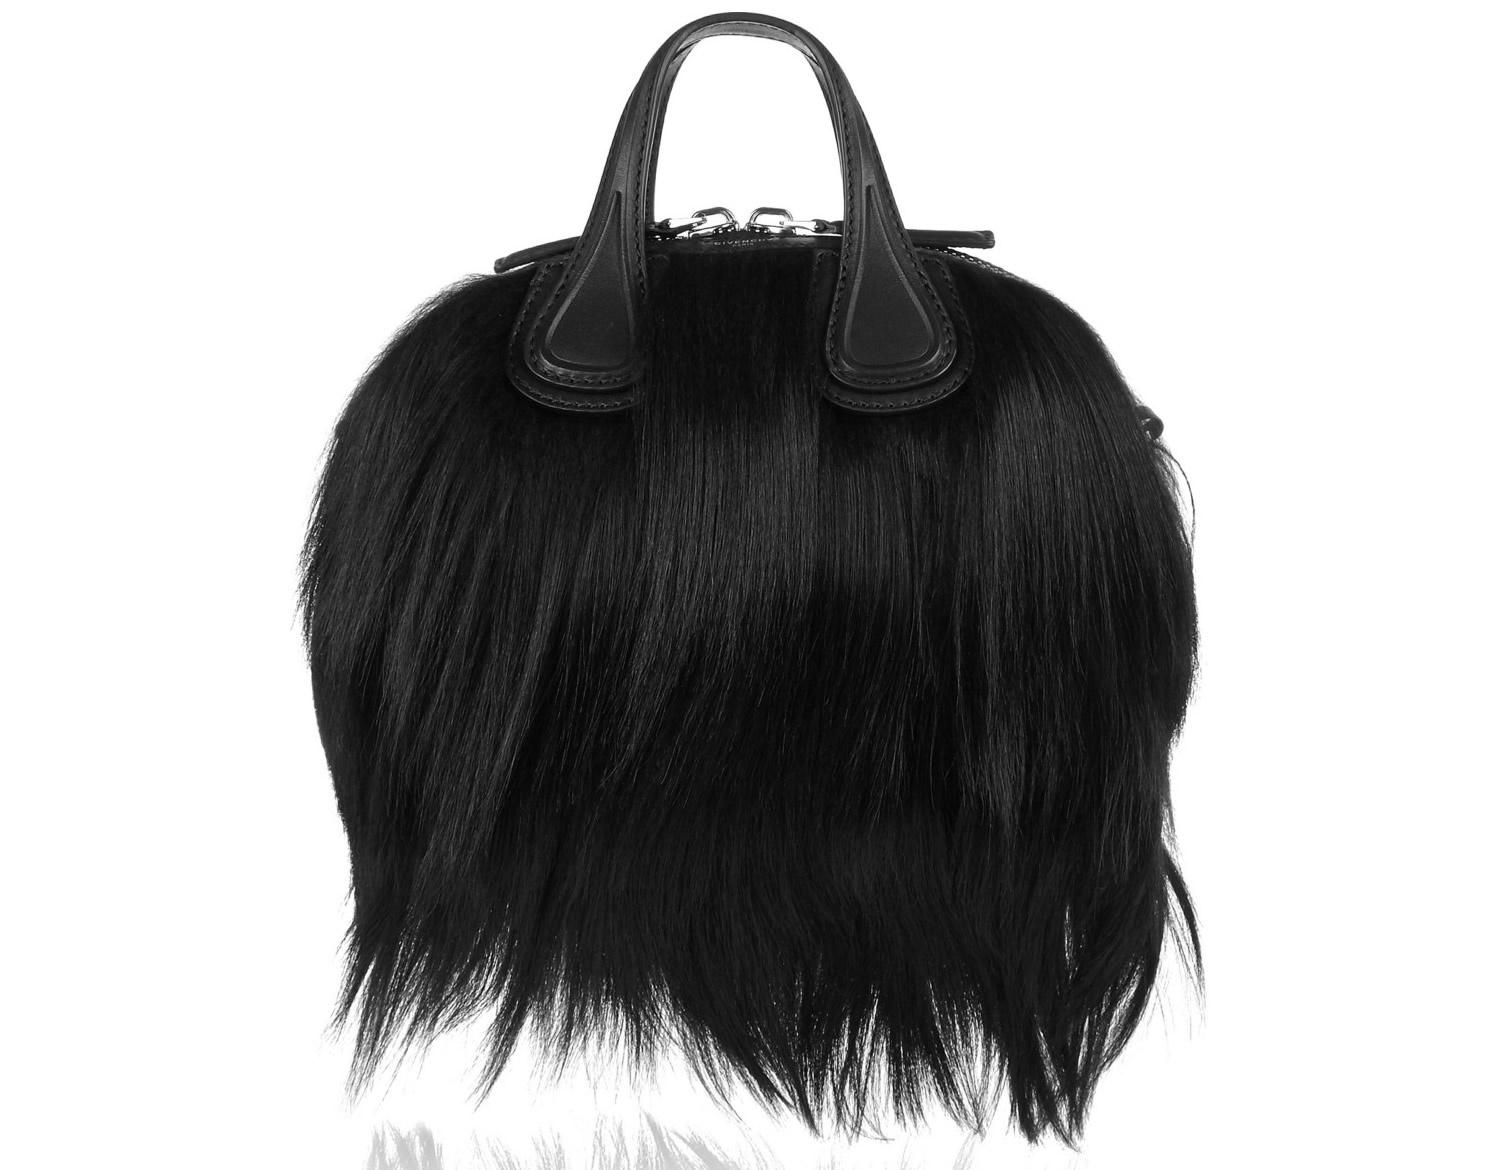 49182730ae68 givenchy bags Archives - PurseBlog